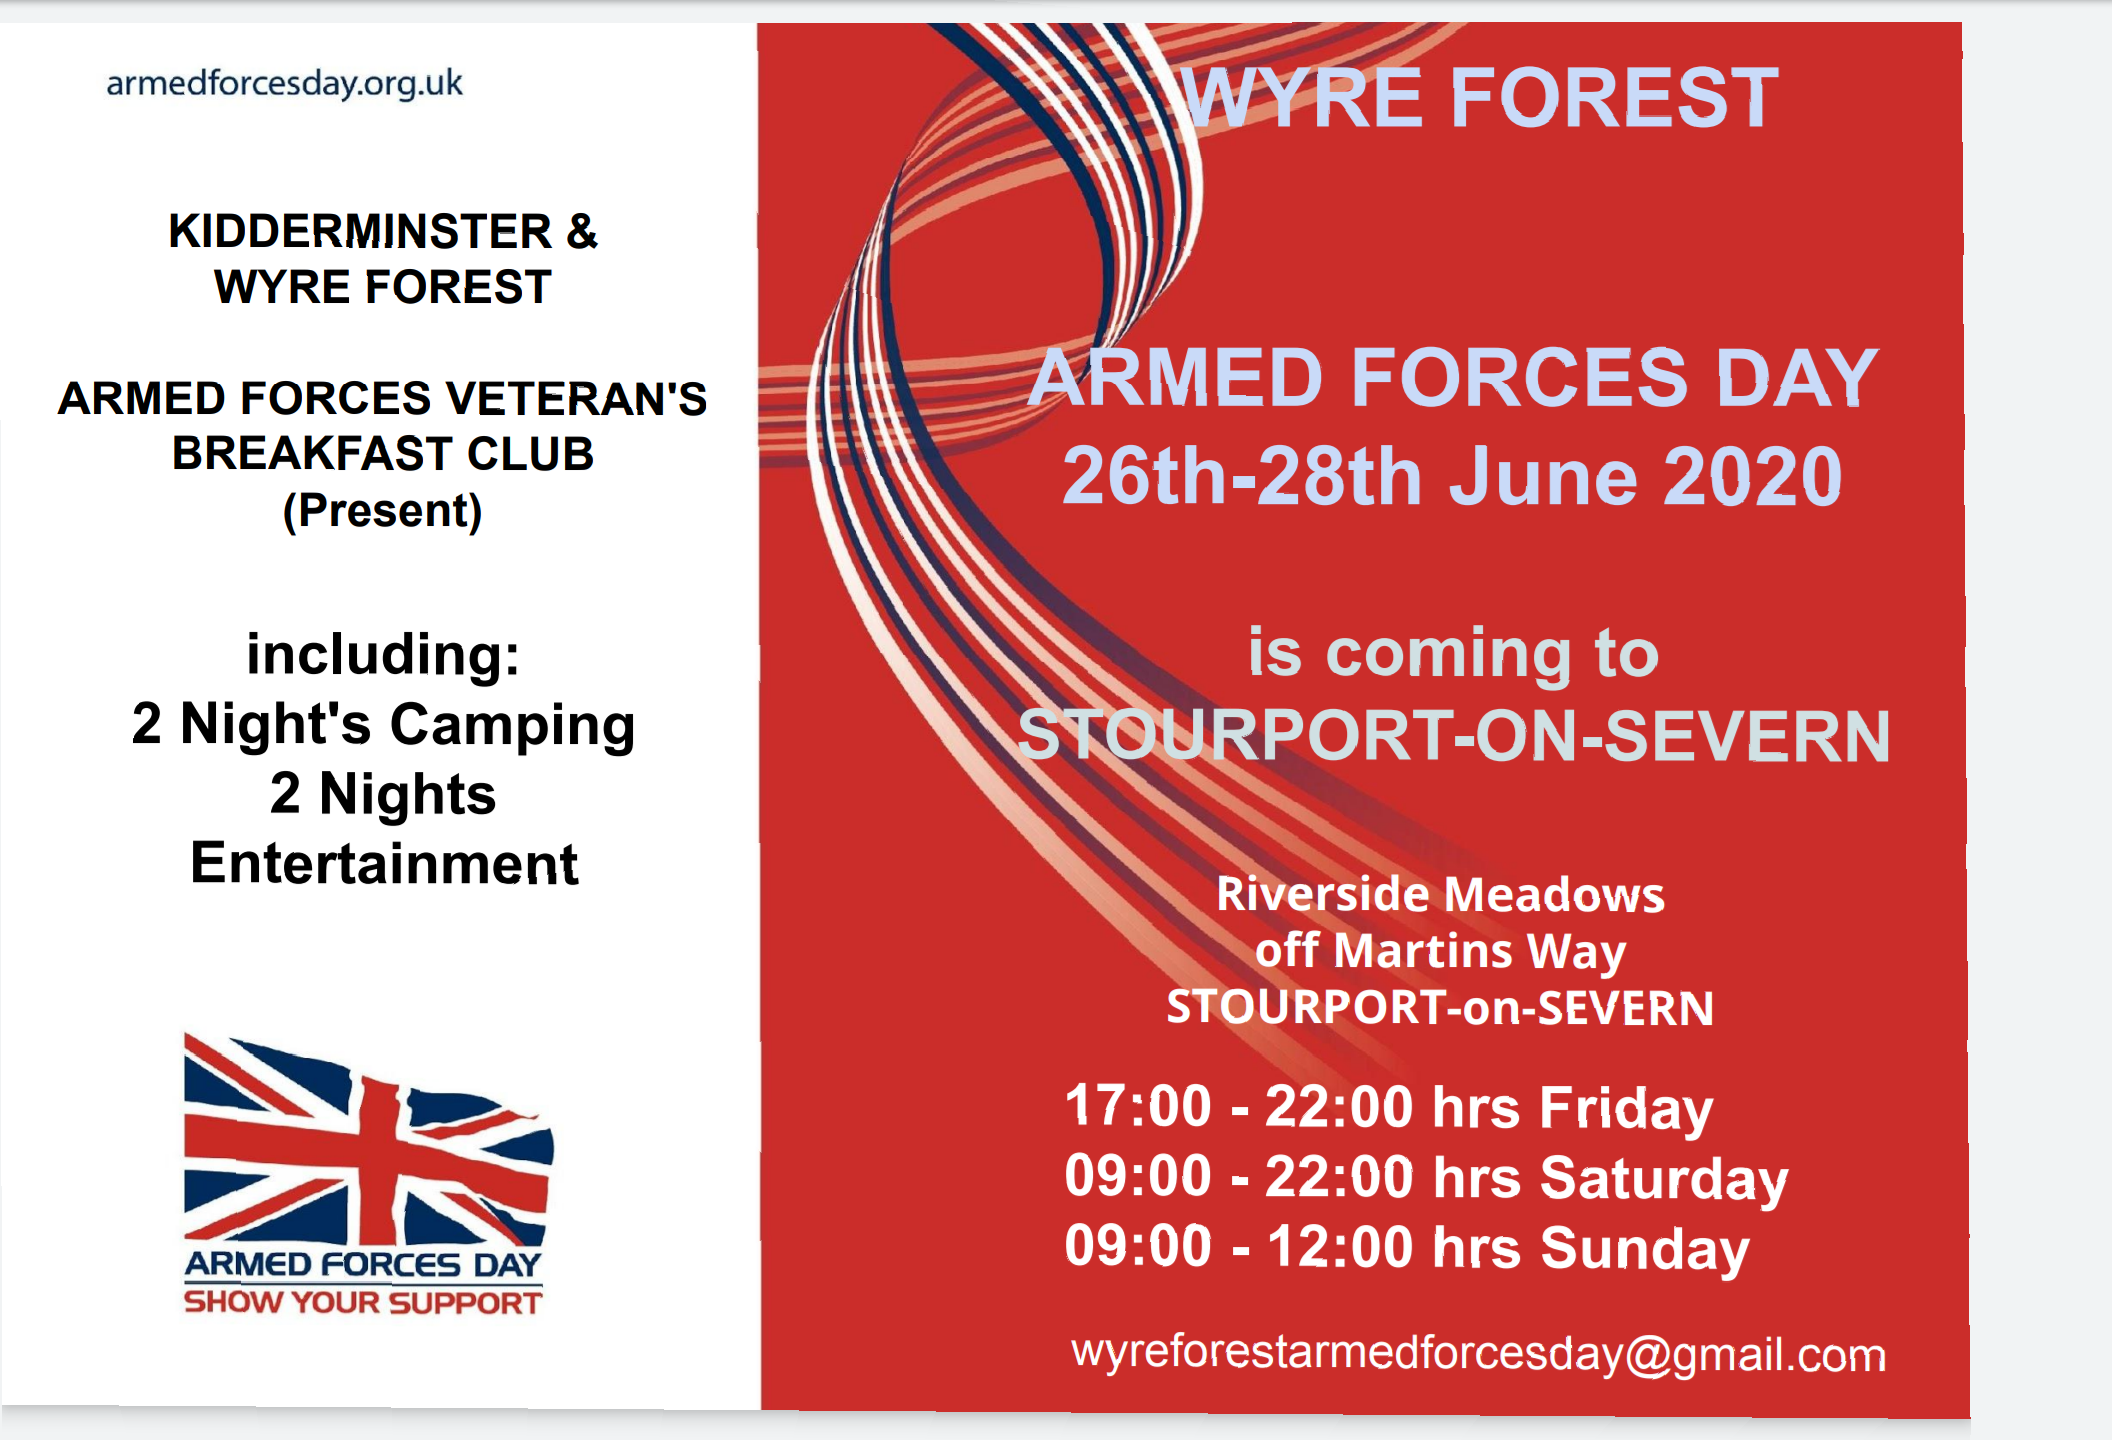 Wyre Forest Armed Forces Day 2020